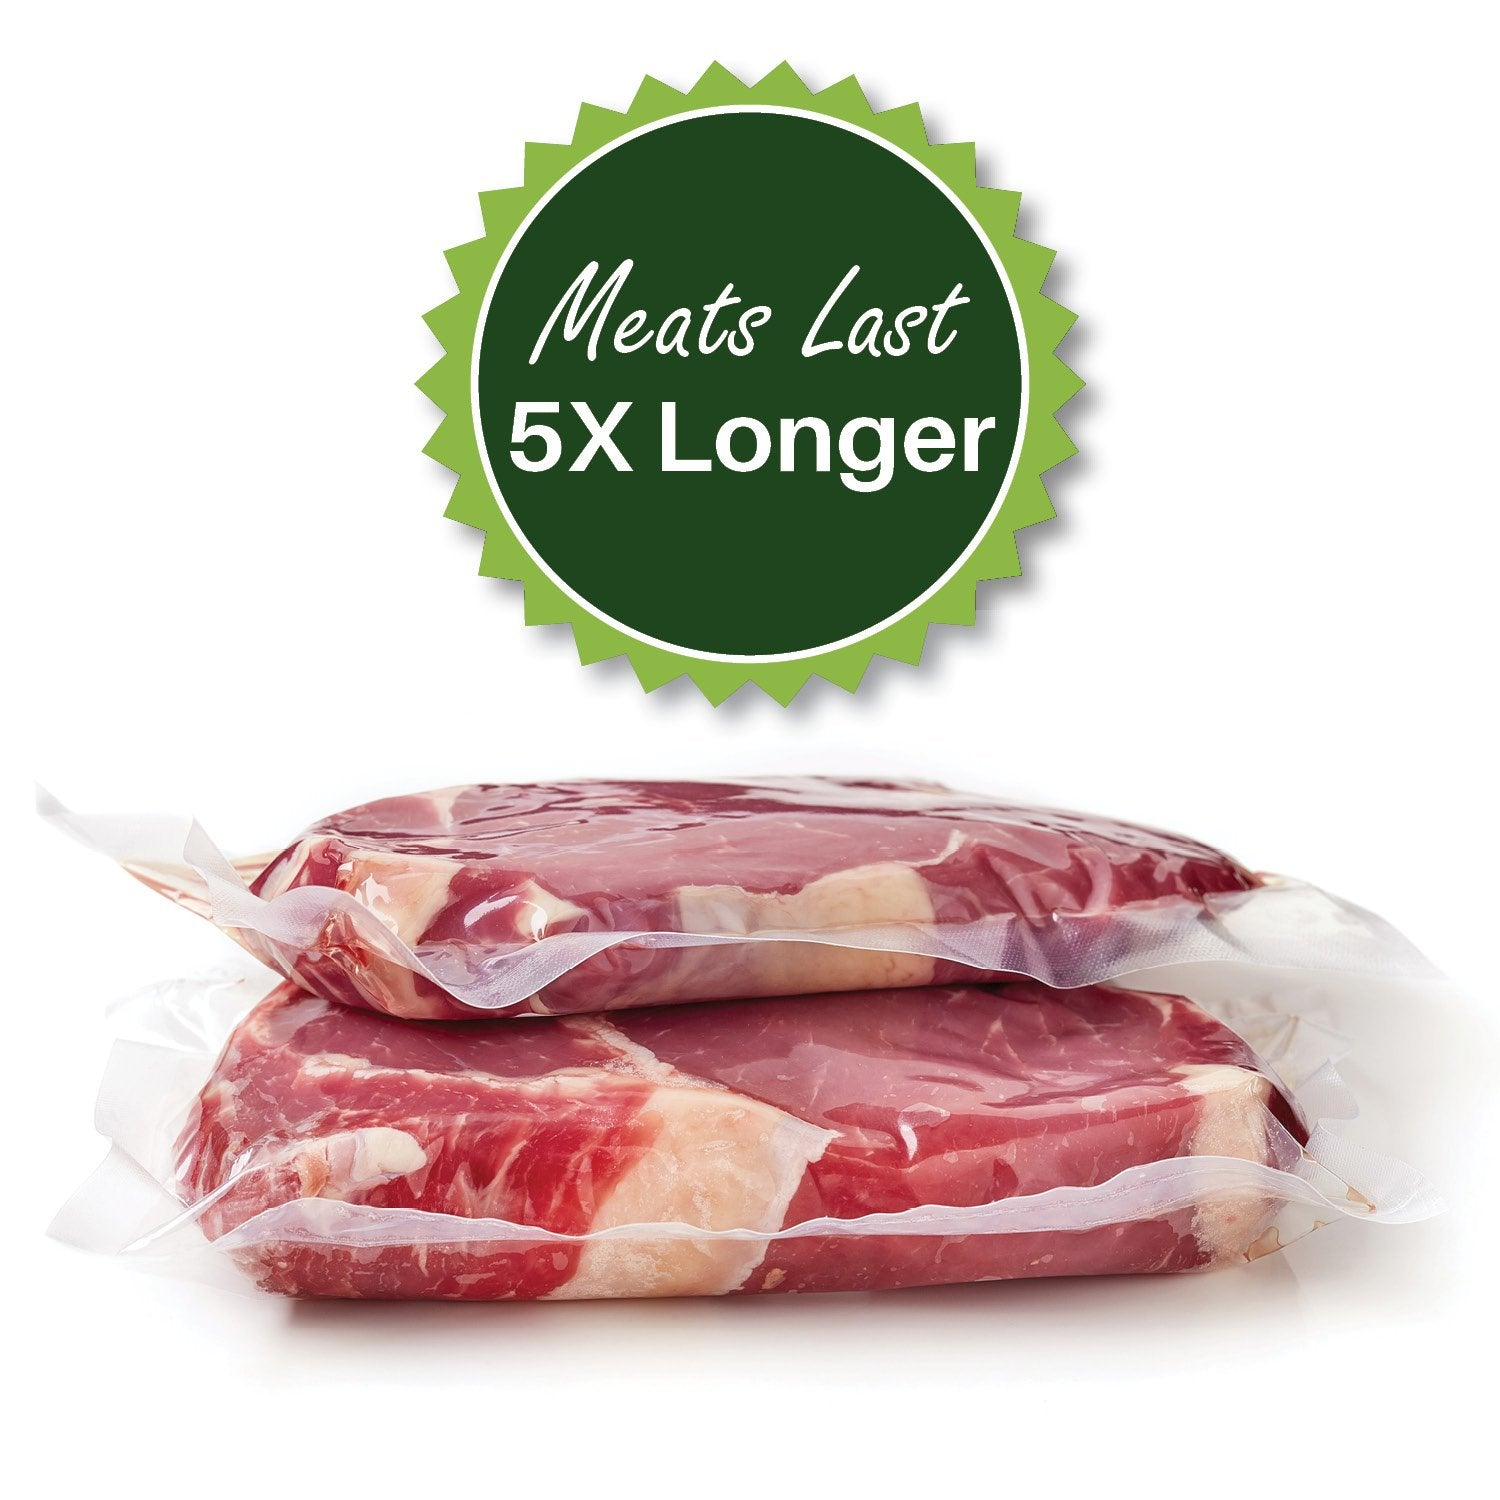 meats last 5X longer - sous vide cooking - airtight - foodsaver compatible - vacuum seal bags